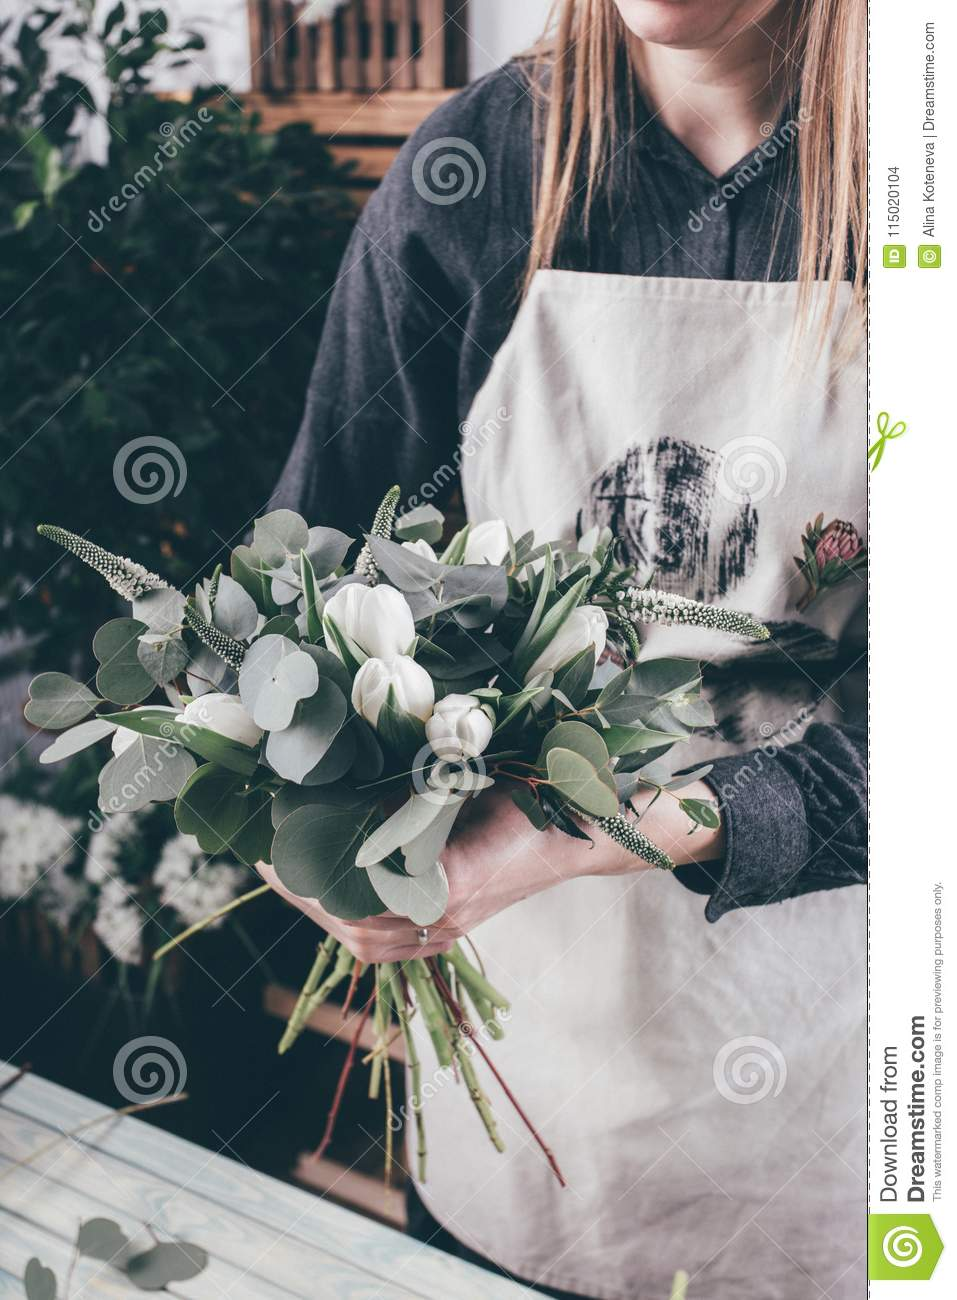 Florist At Work On Arragment Flower Bouquet Stock Photo Image Of